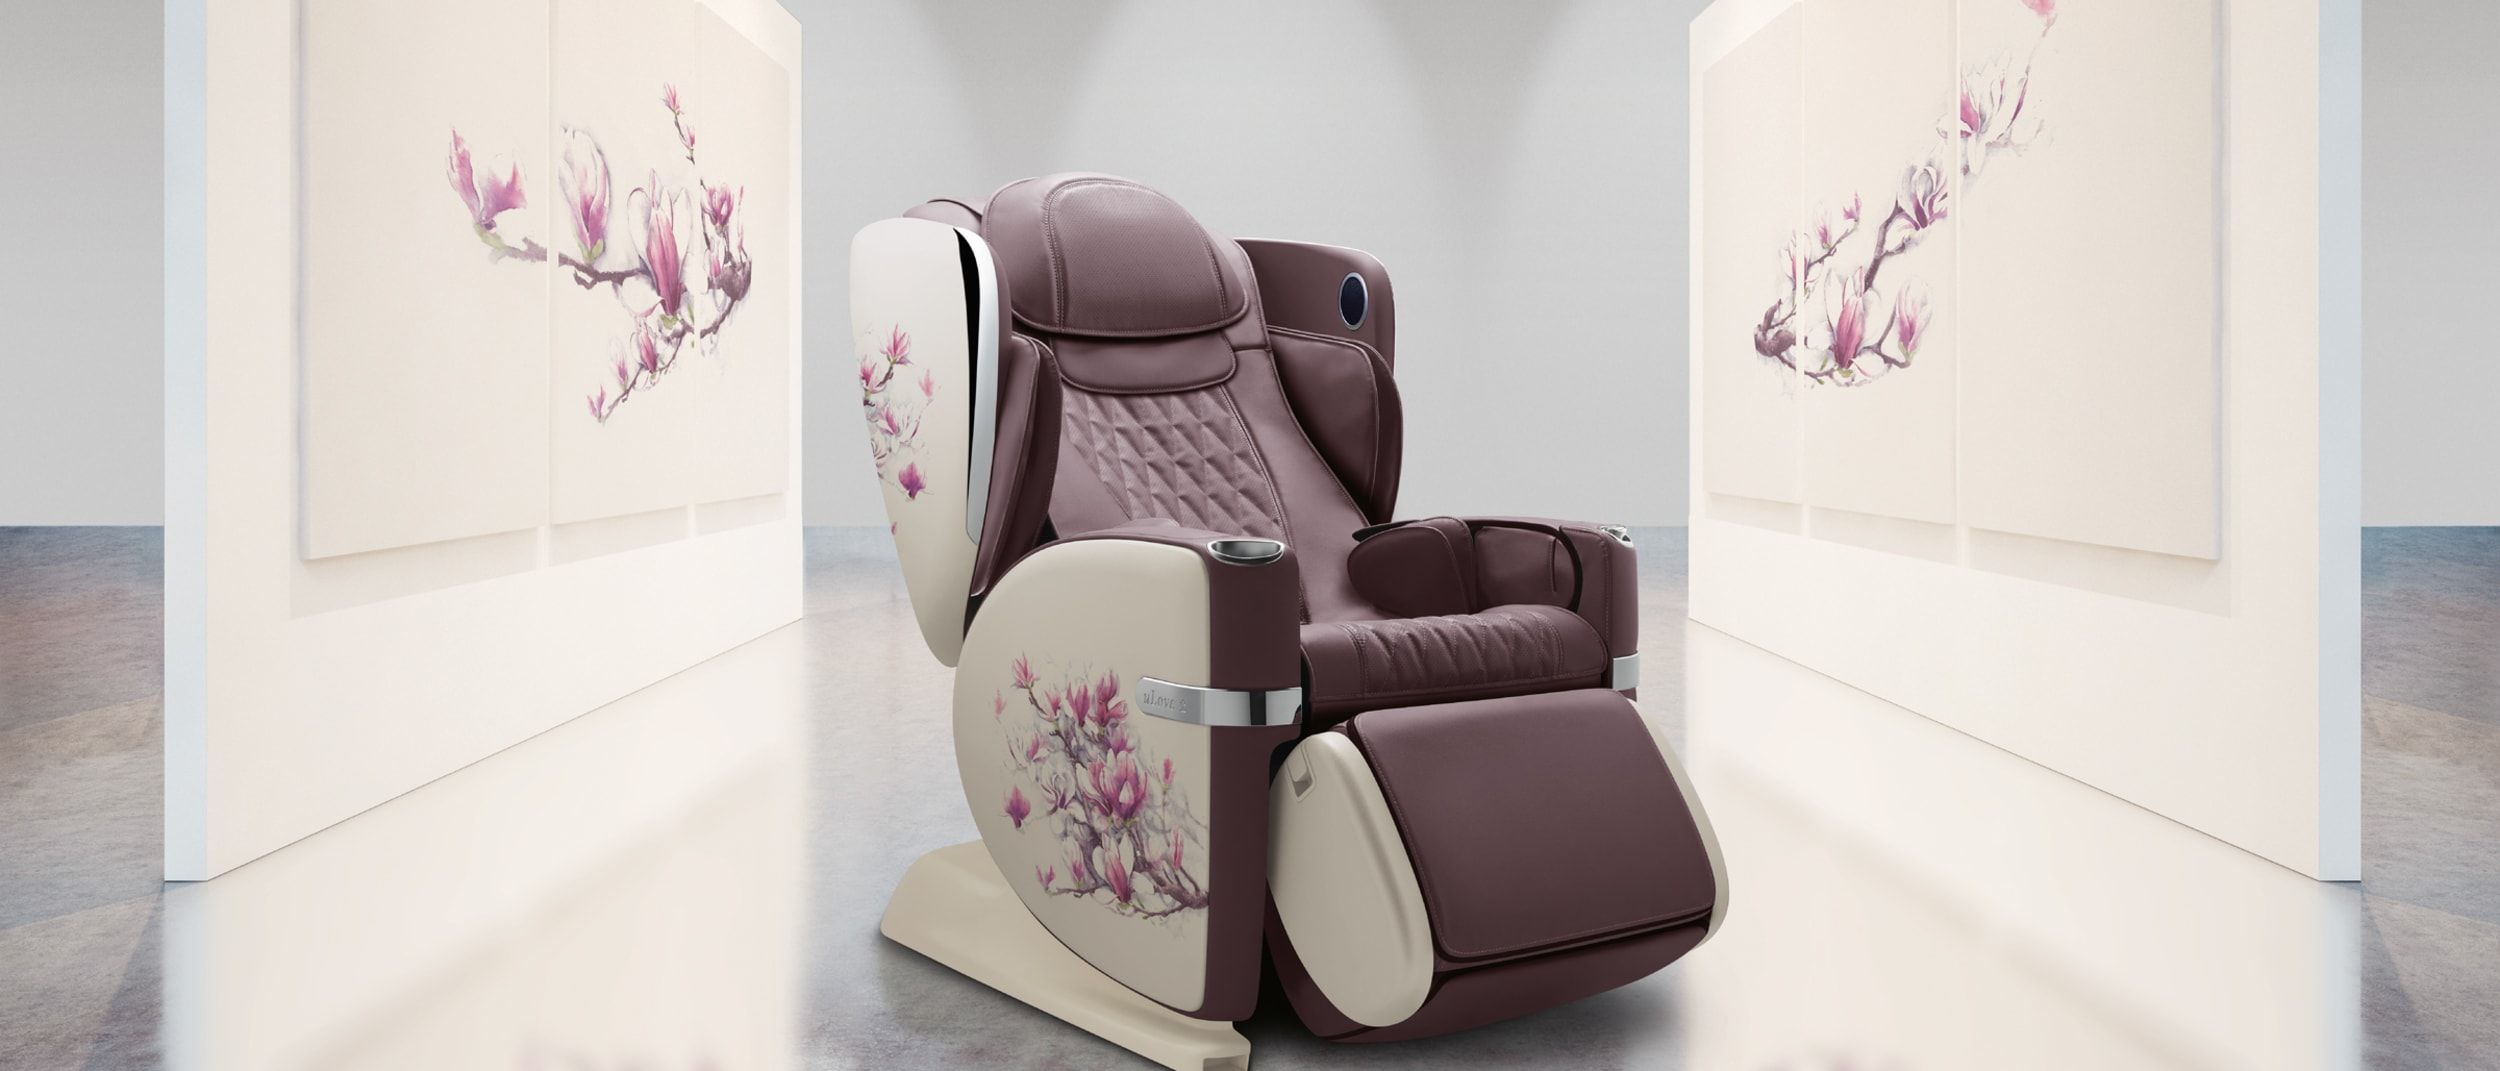 Westfield Plus Offer: OSIM - Free health soles with $199  spend